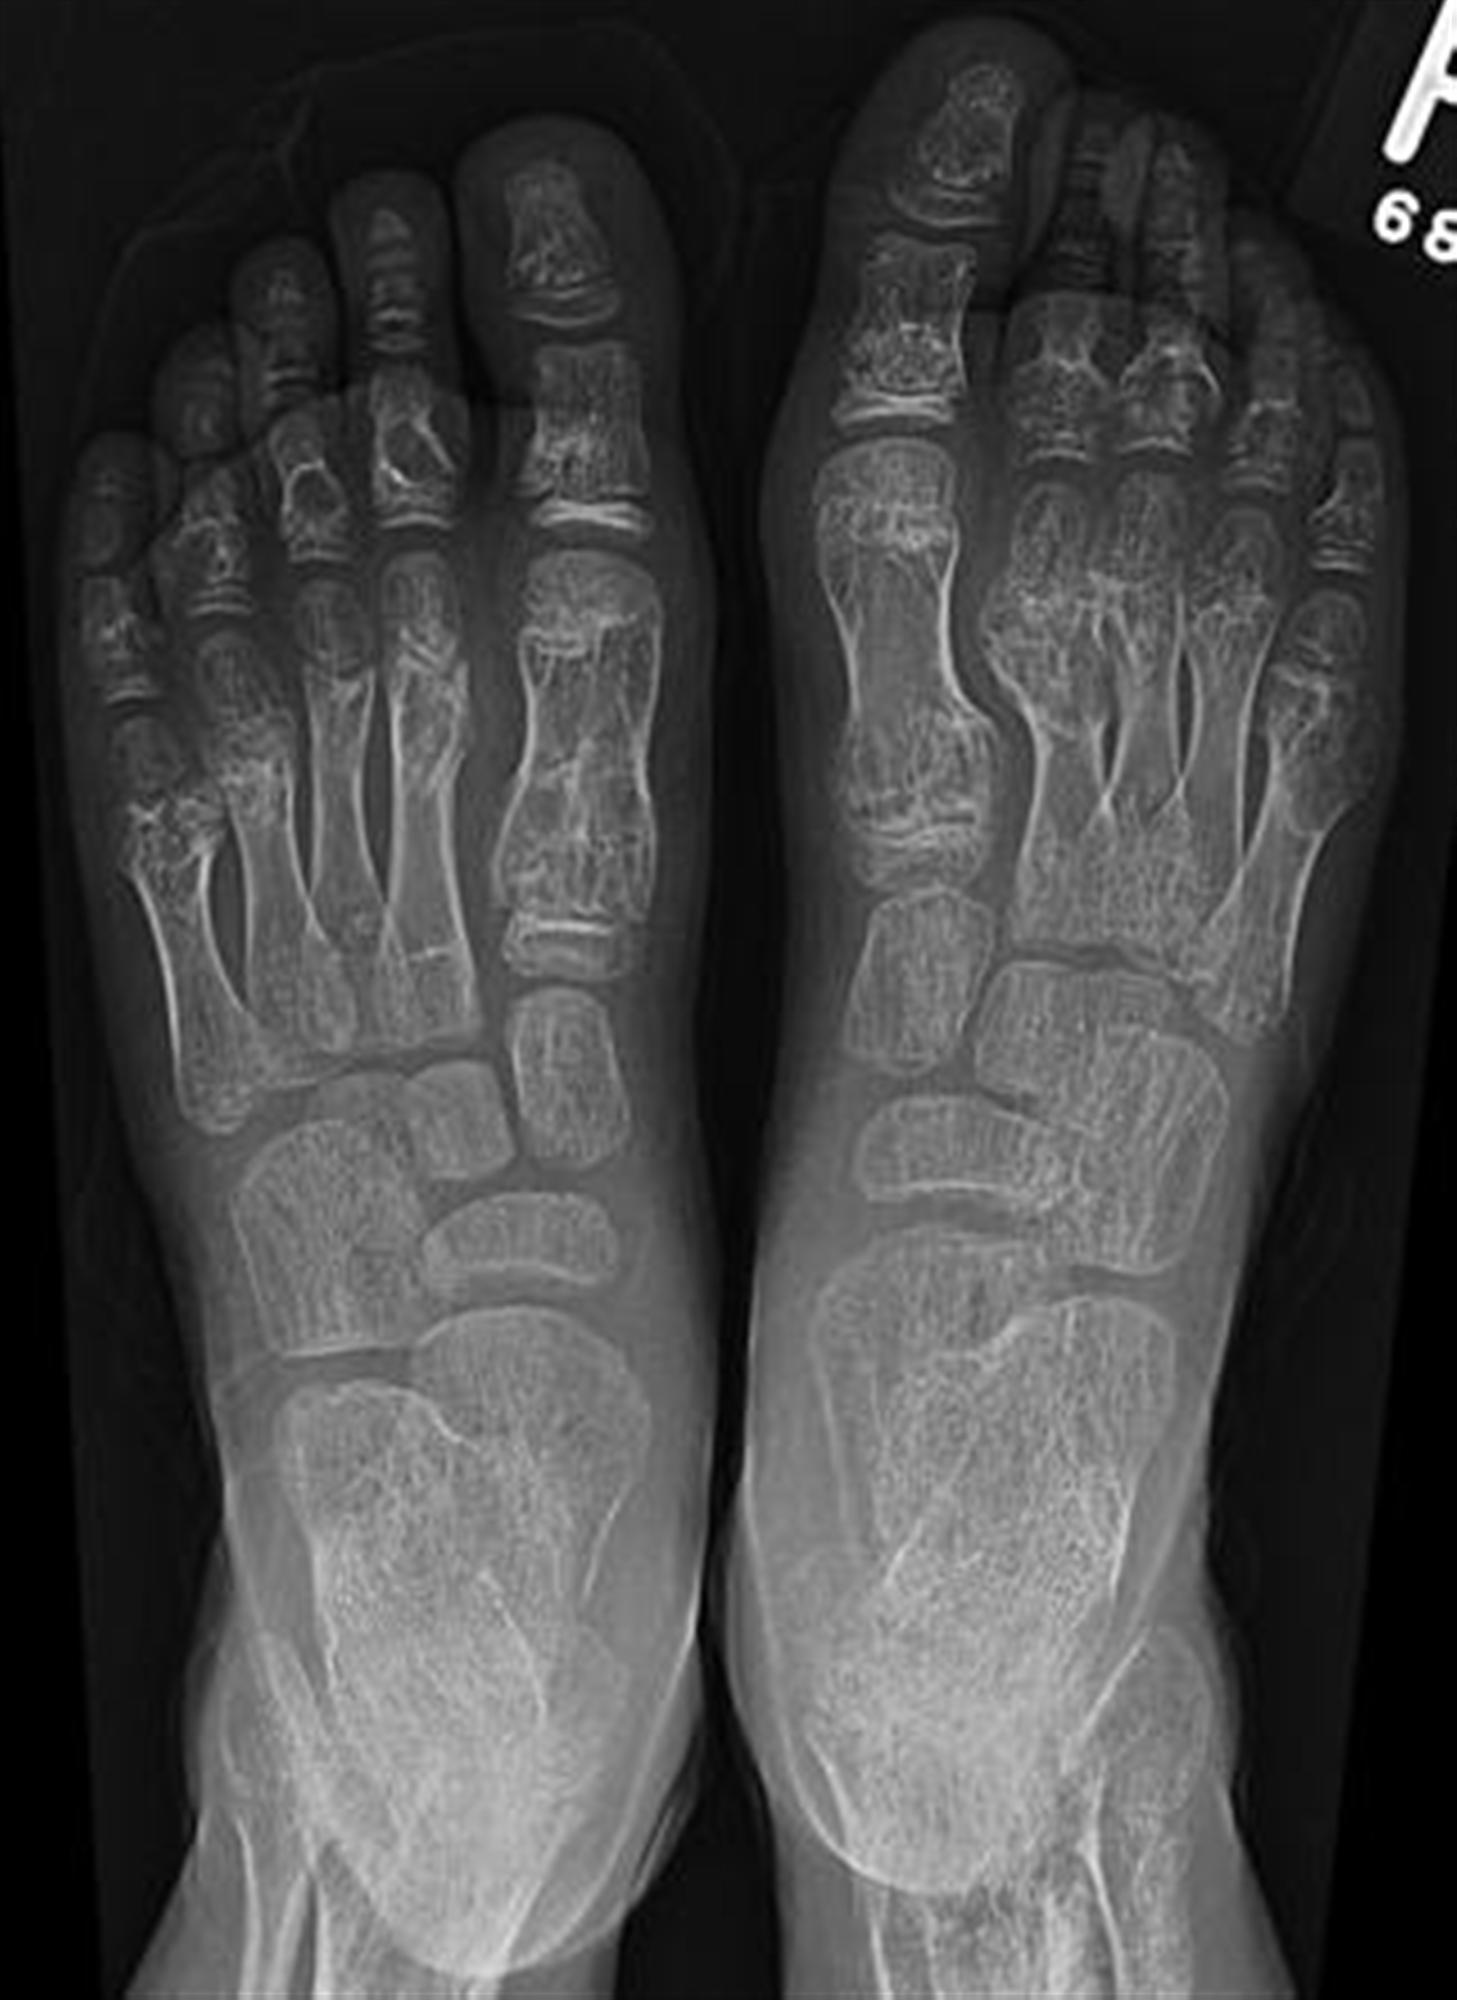 https://upload.orthobullets.com/topic/8018/images/ollier foot.jpg